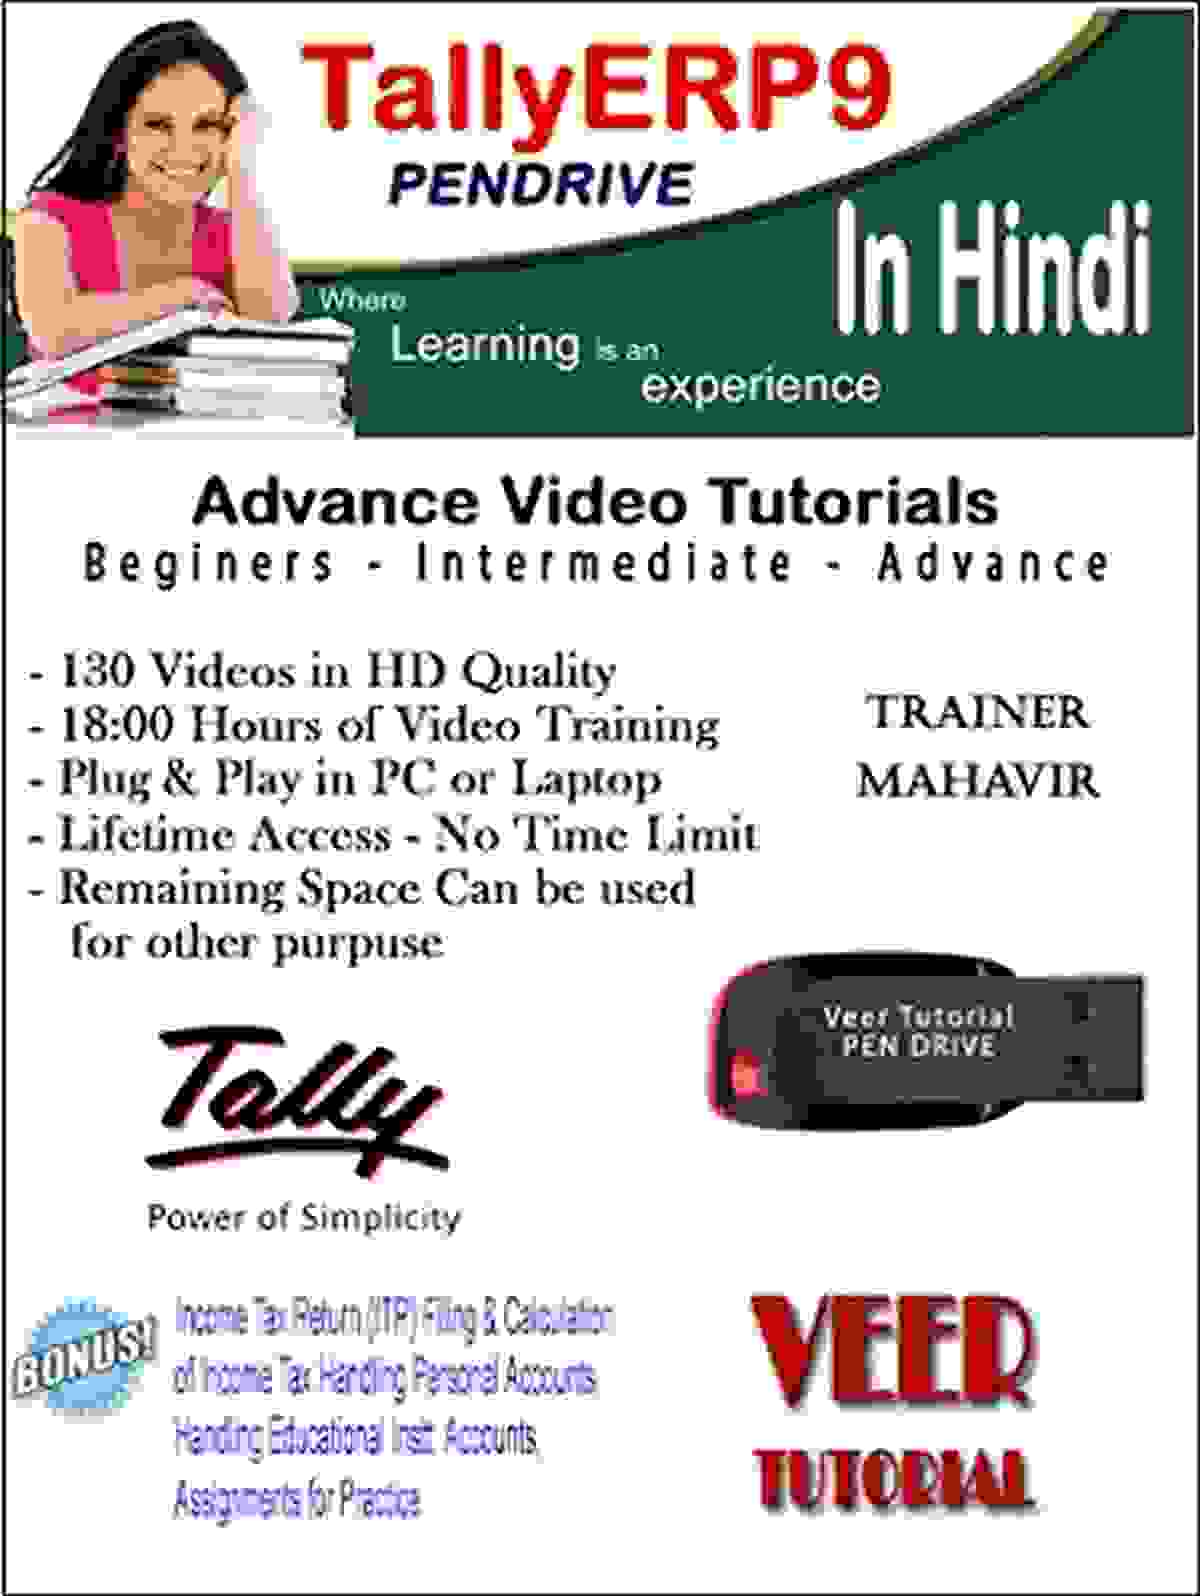 Tally Tutorial Pendrive | TallyERP9 Learning Tutorial Video Price 5 Apr 2020 Tallyerp9 Tutorial Hindi Video online shop - HelpingIndia